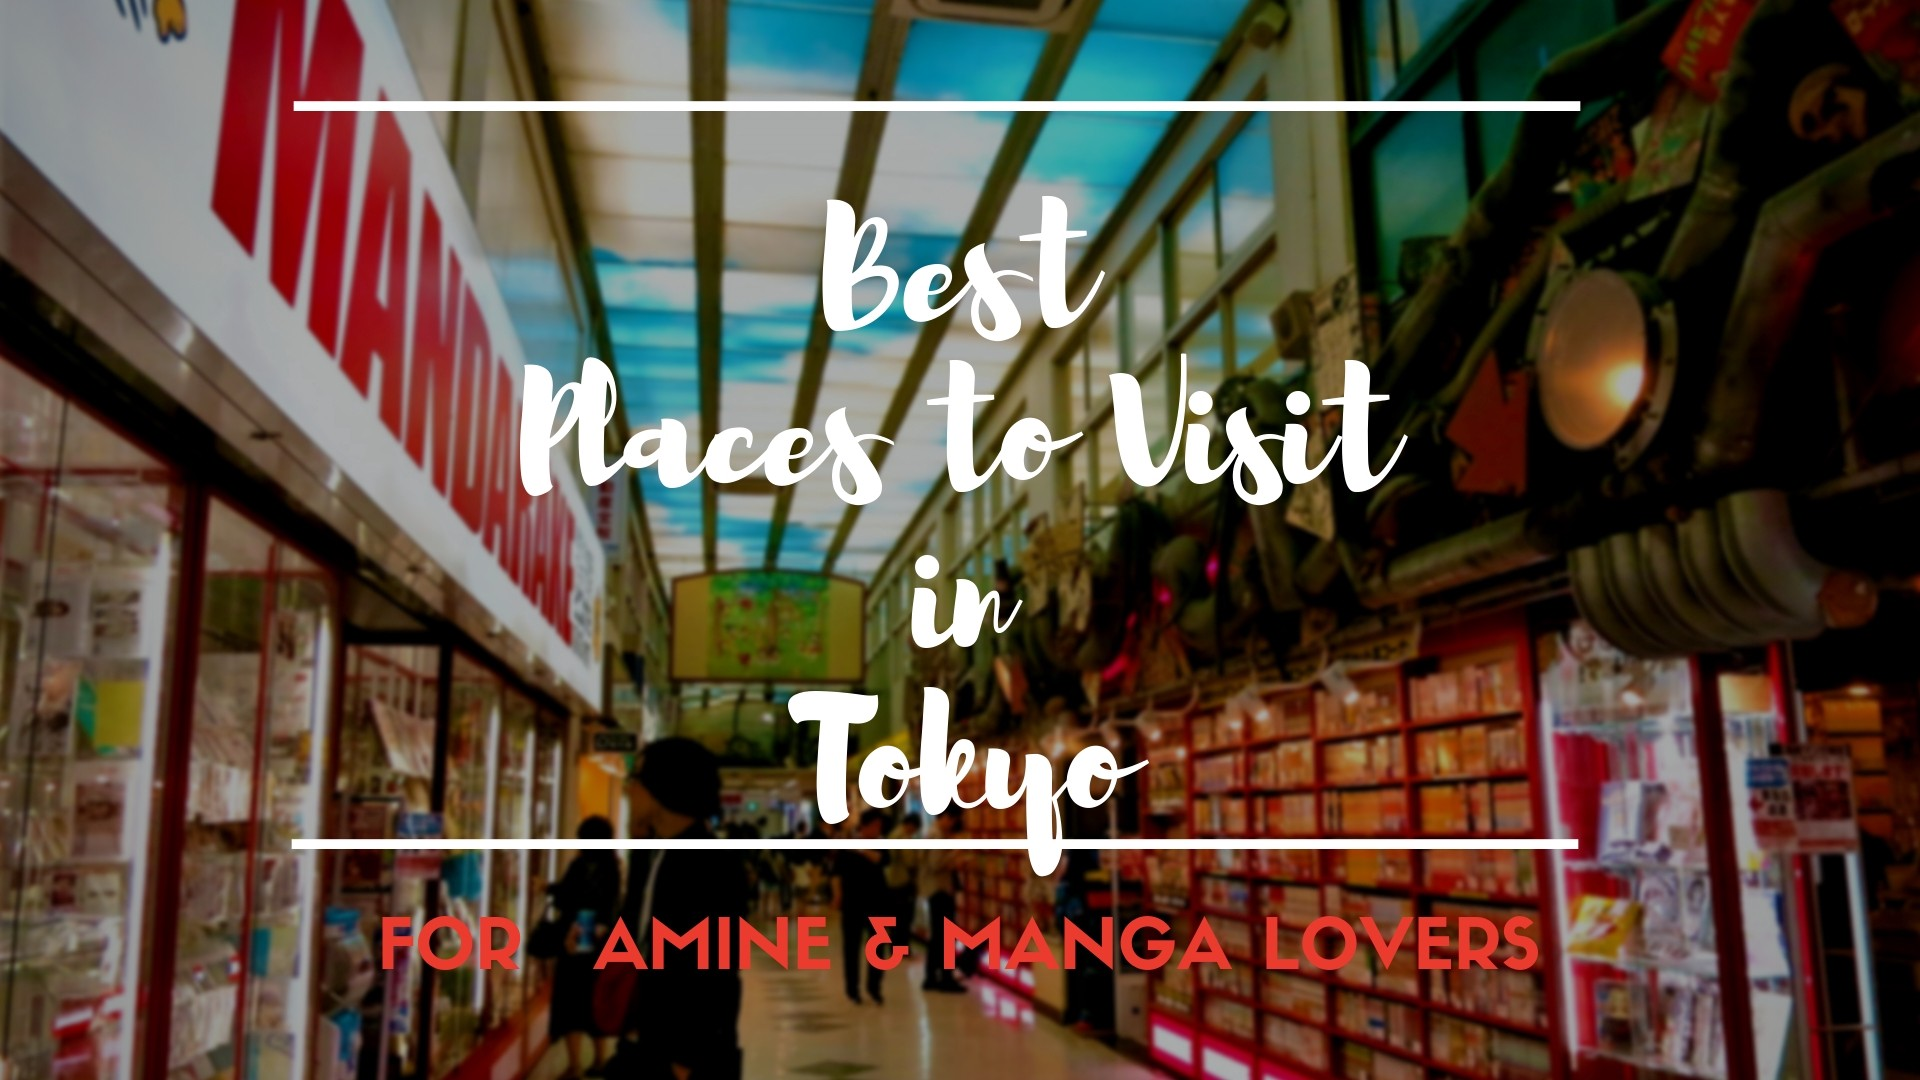 10 best spots in tokyo for anime and manga lovers japan travel guide jw web magazine